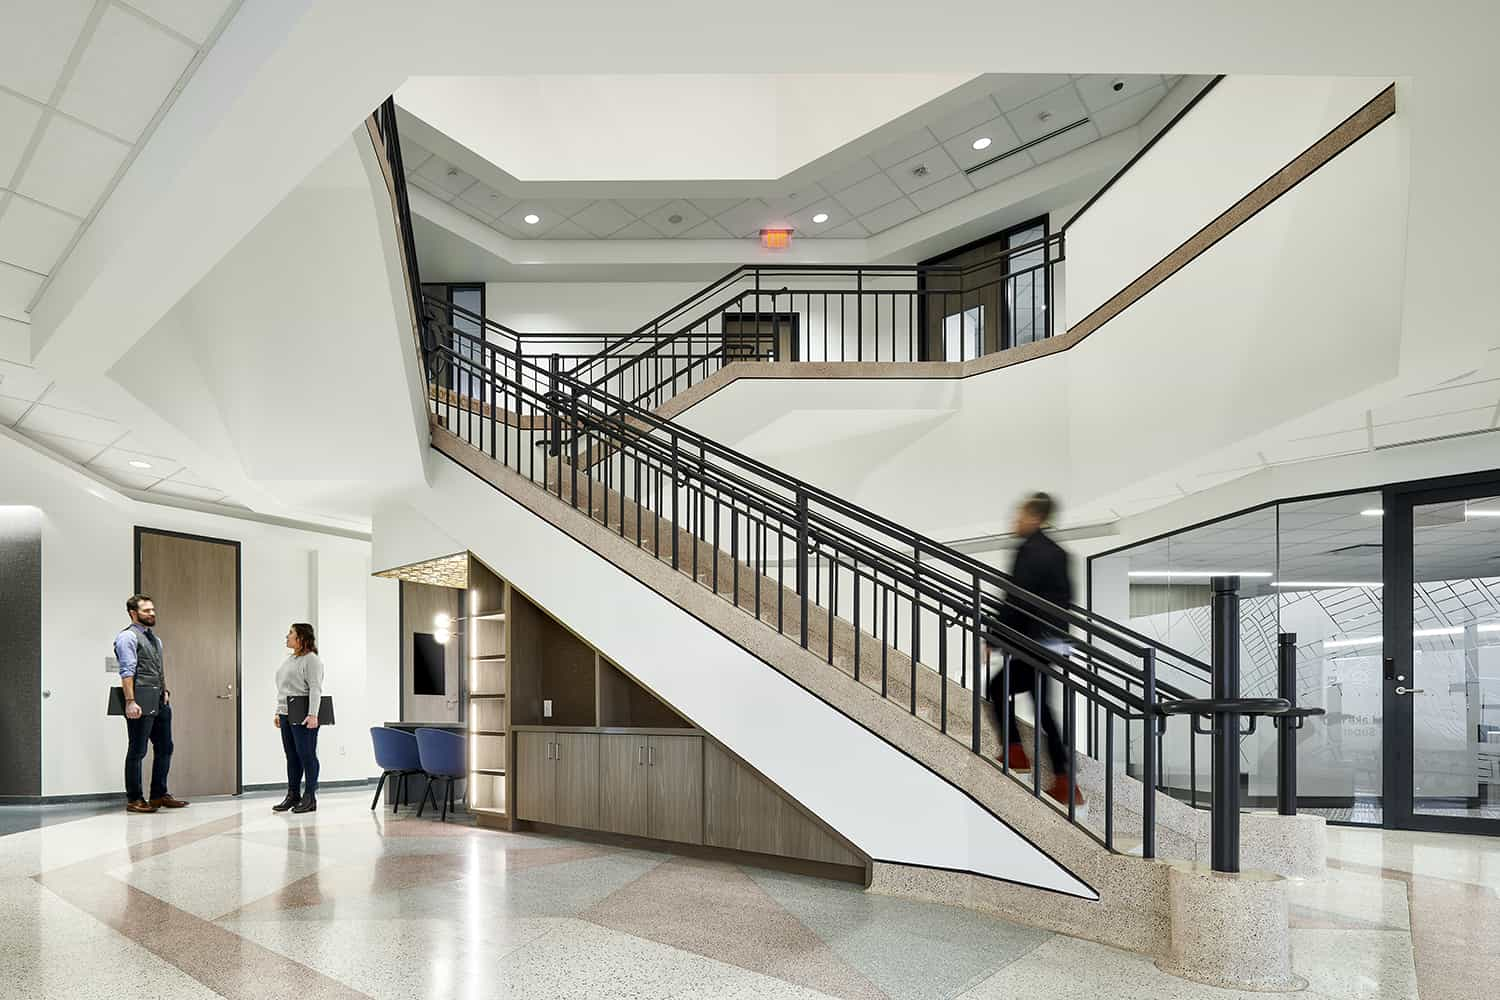 Overall view of the atrium and staircase in the office center.